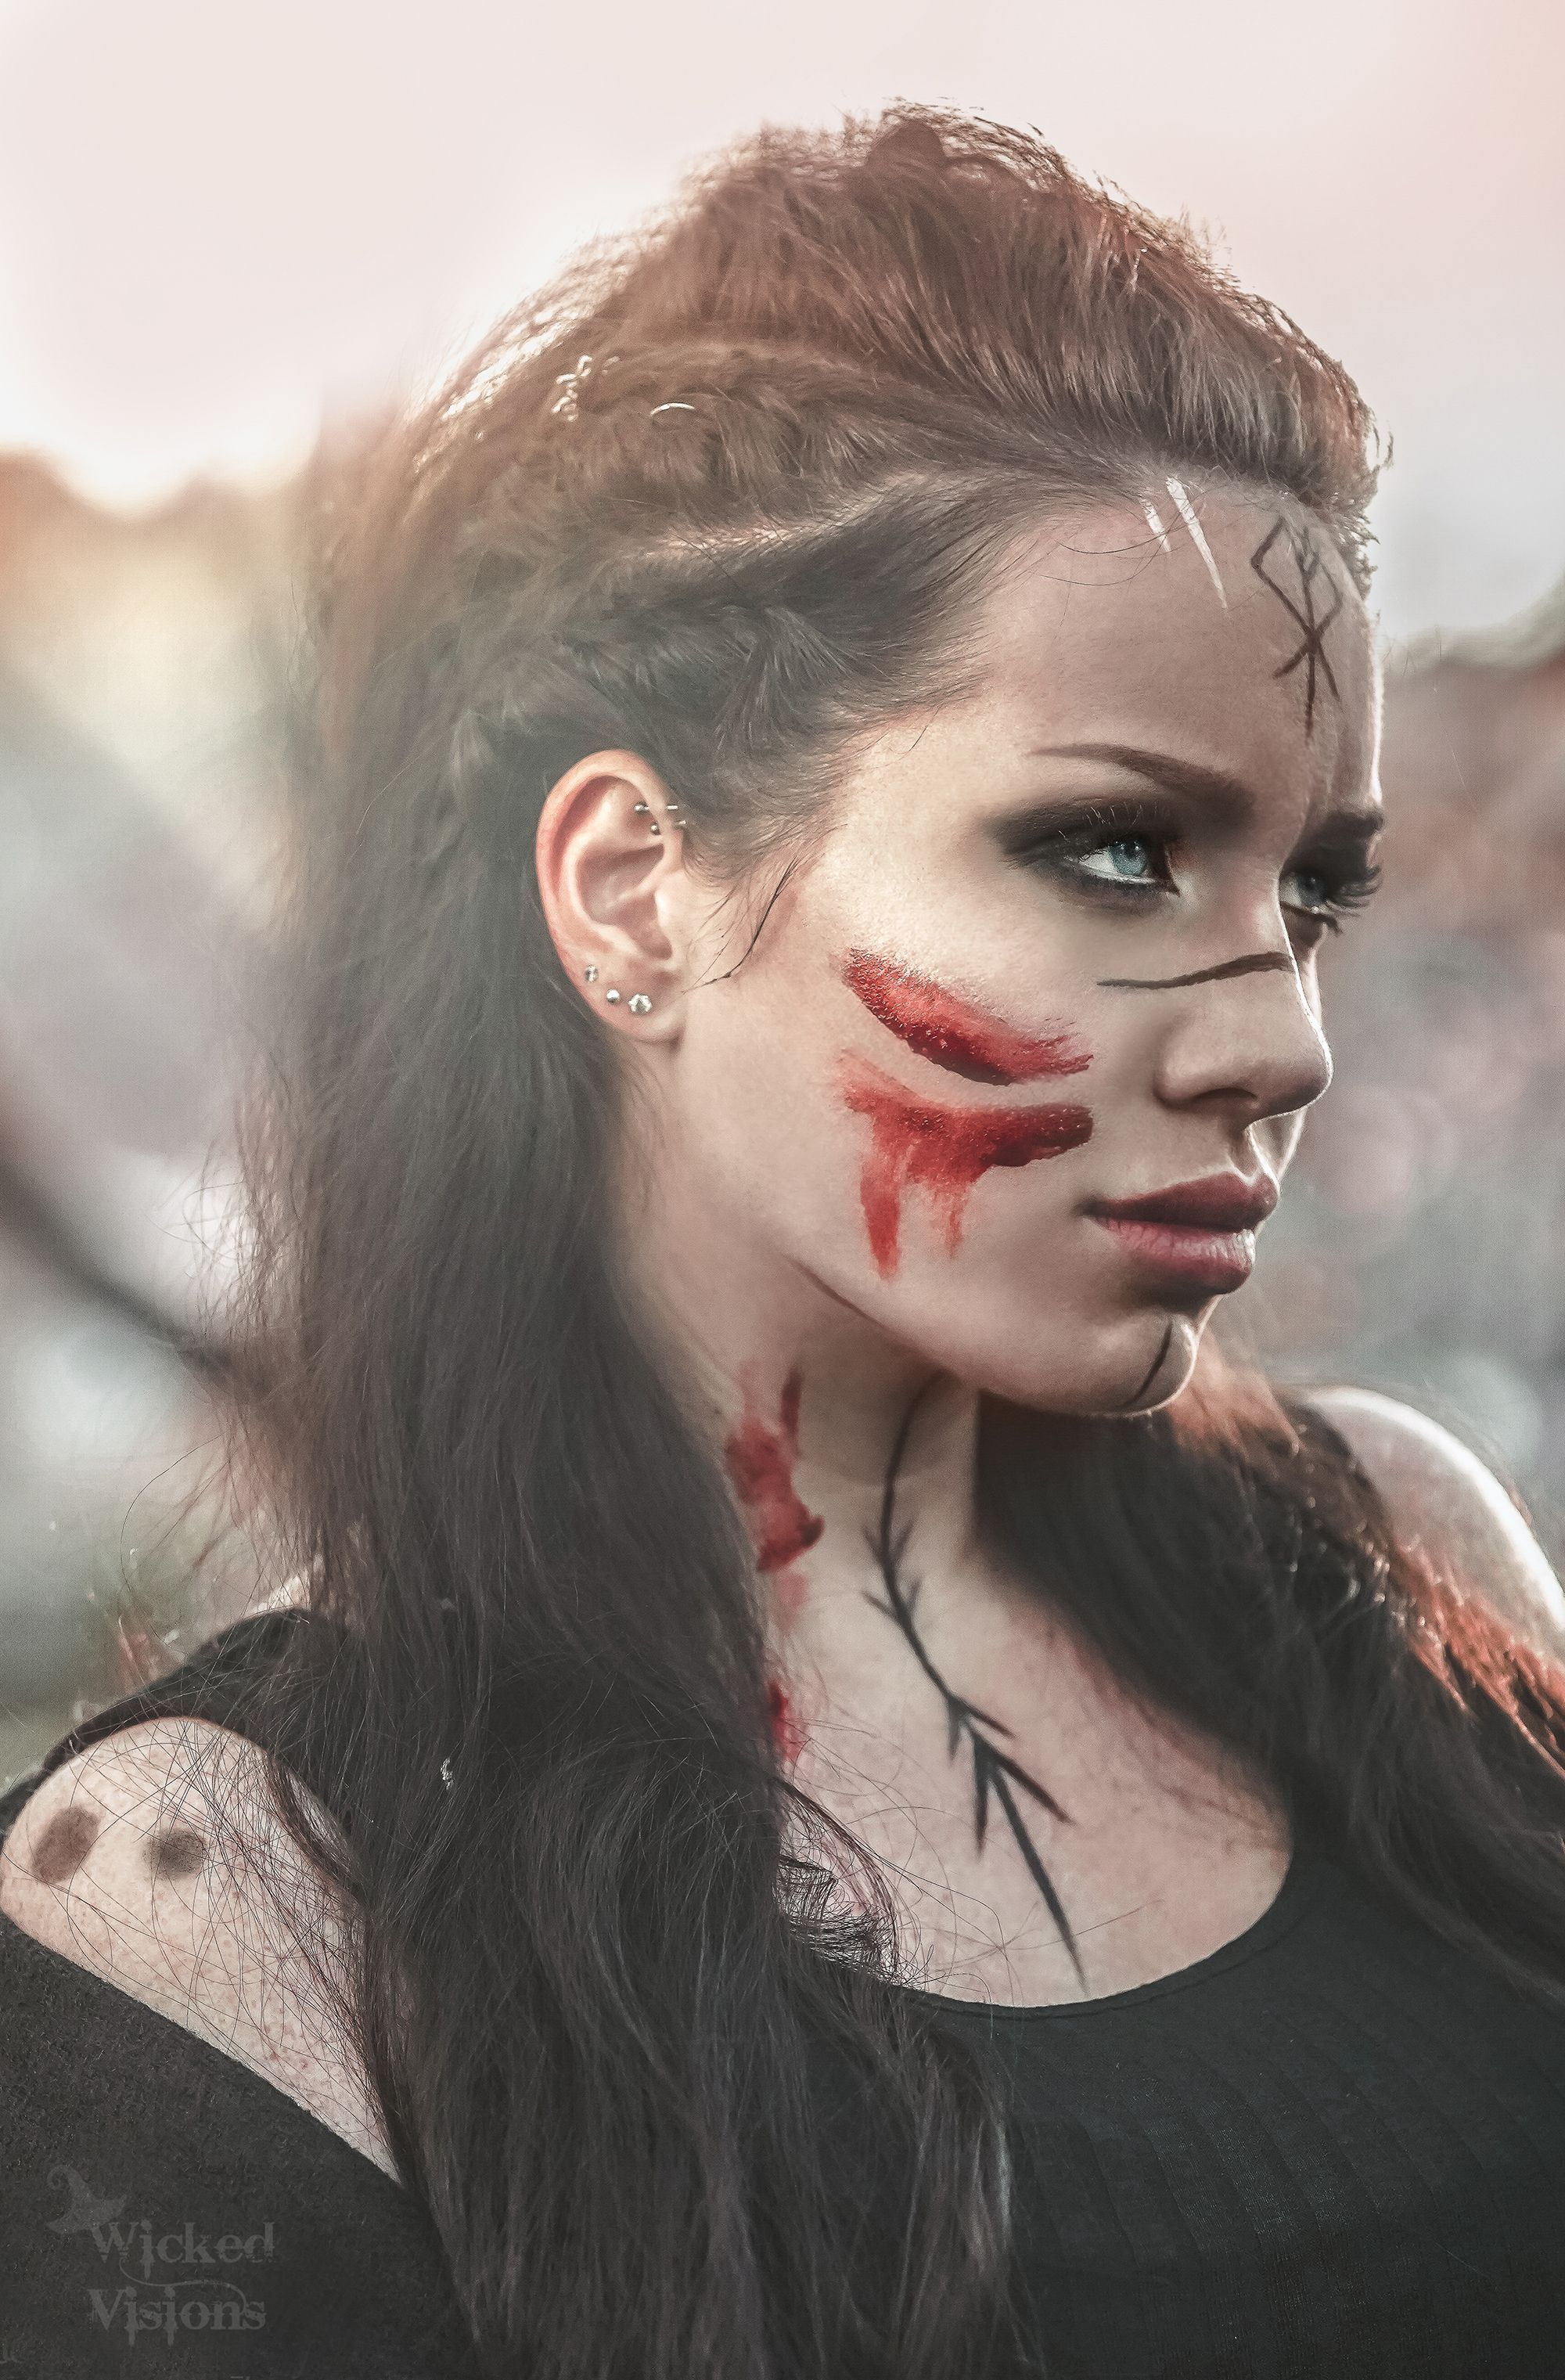 Halloween 2020 Costumes Warrior Woman Sangre y fuego in 2020 | Viking hair, Warrior woman, Viking women